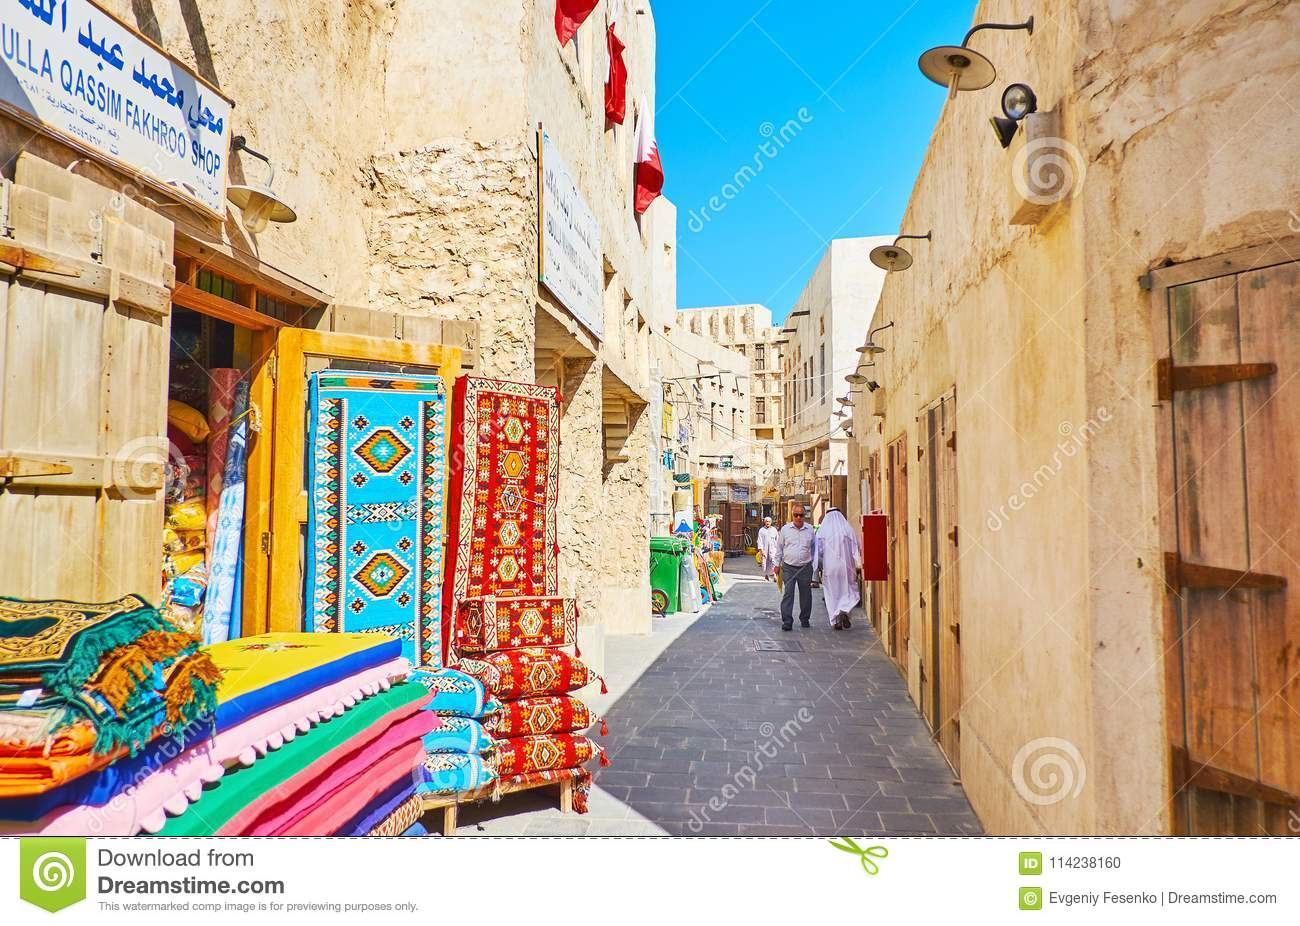 Carpet Store In Souq Waqif, Doha, Qatar Editorial Image - Image of